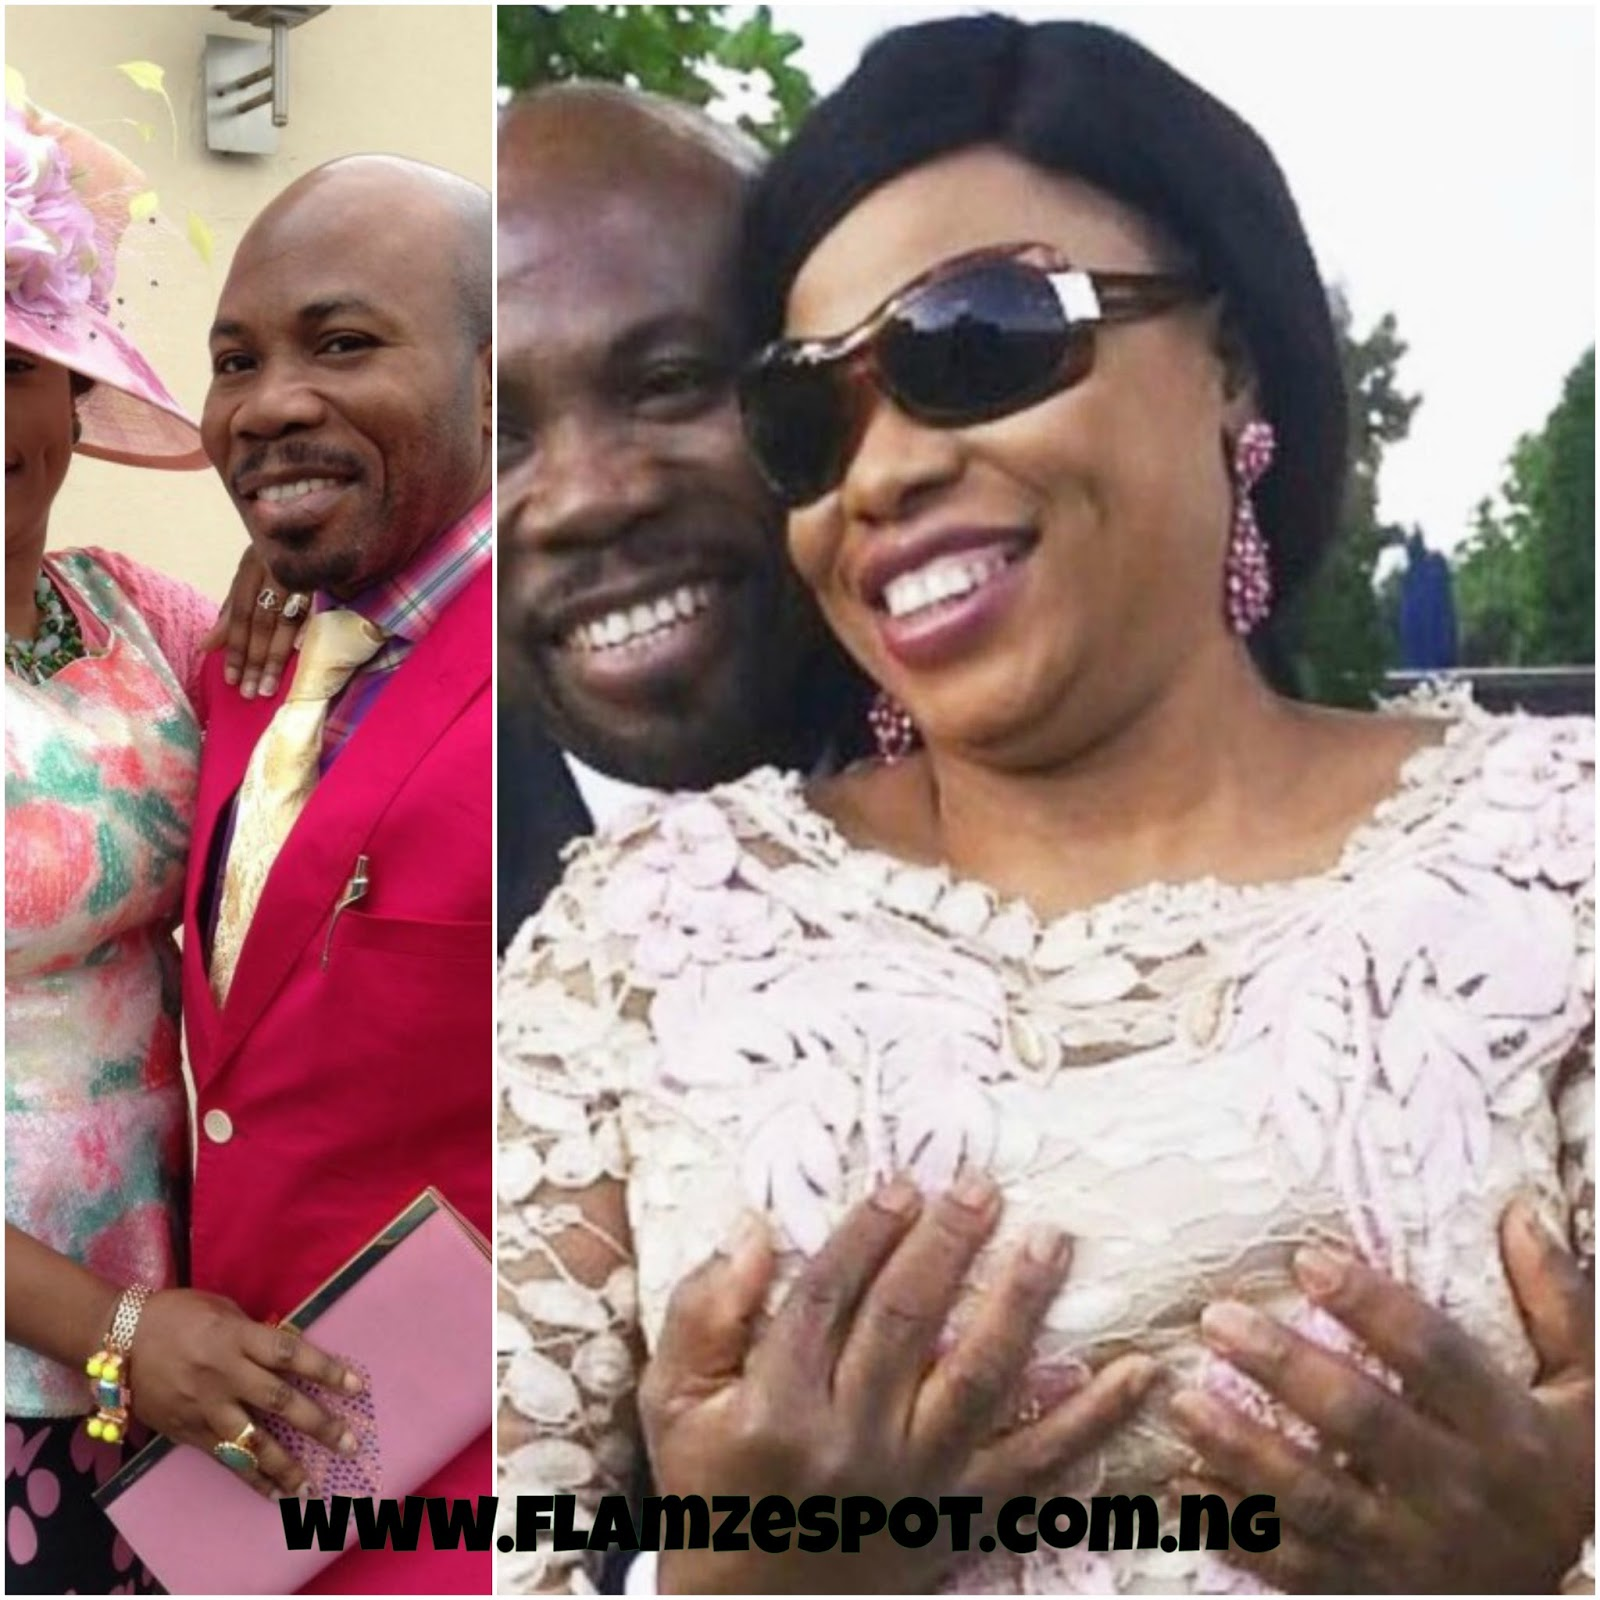 UK Based Nigerian Prophet & Prophetess blasted on instagram for holding br3est in public